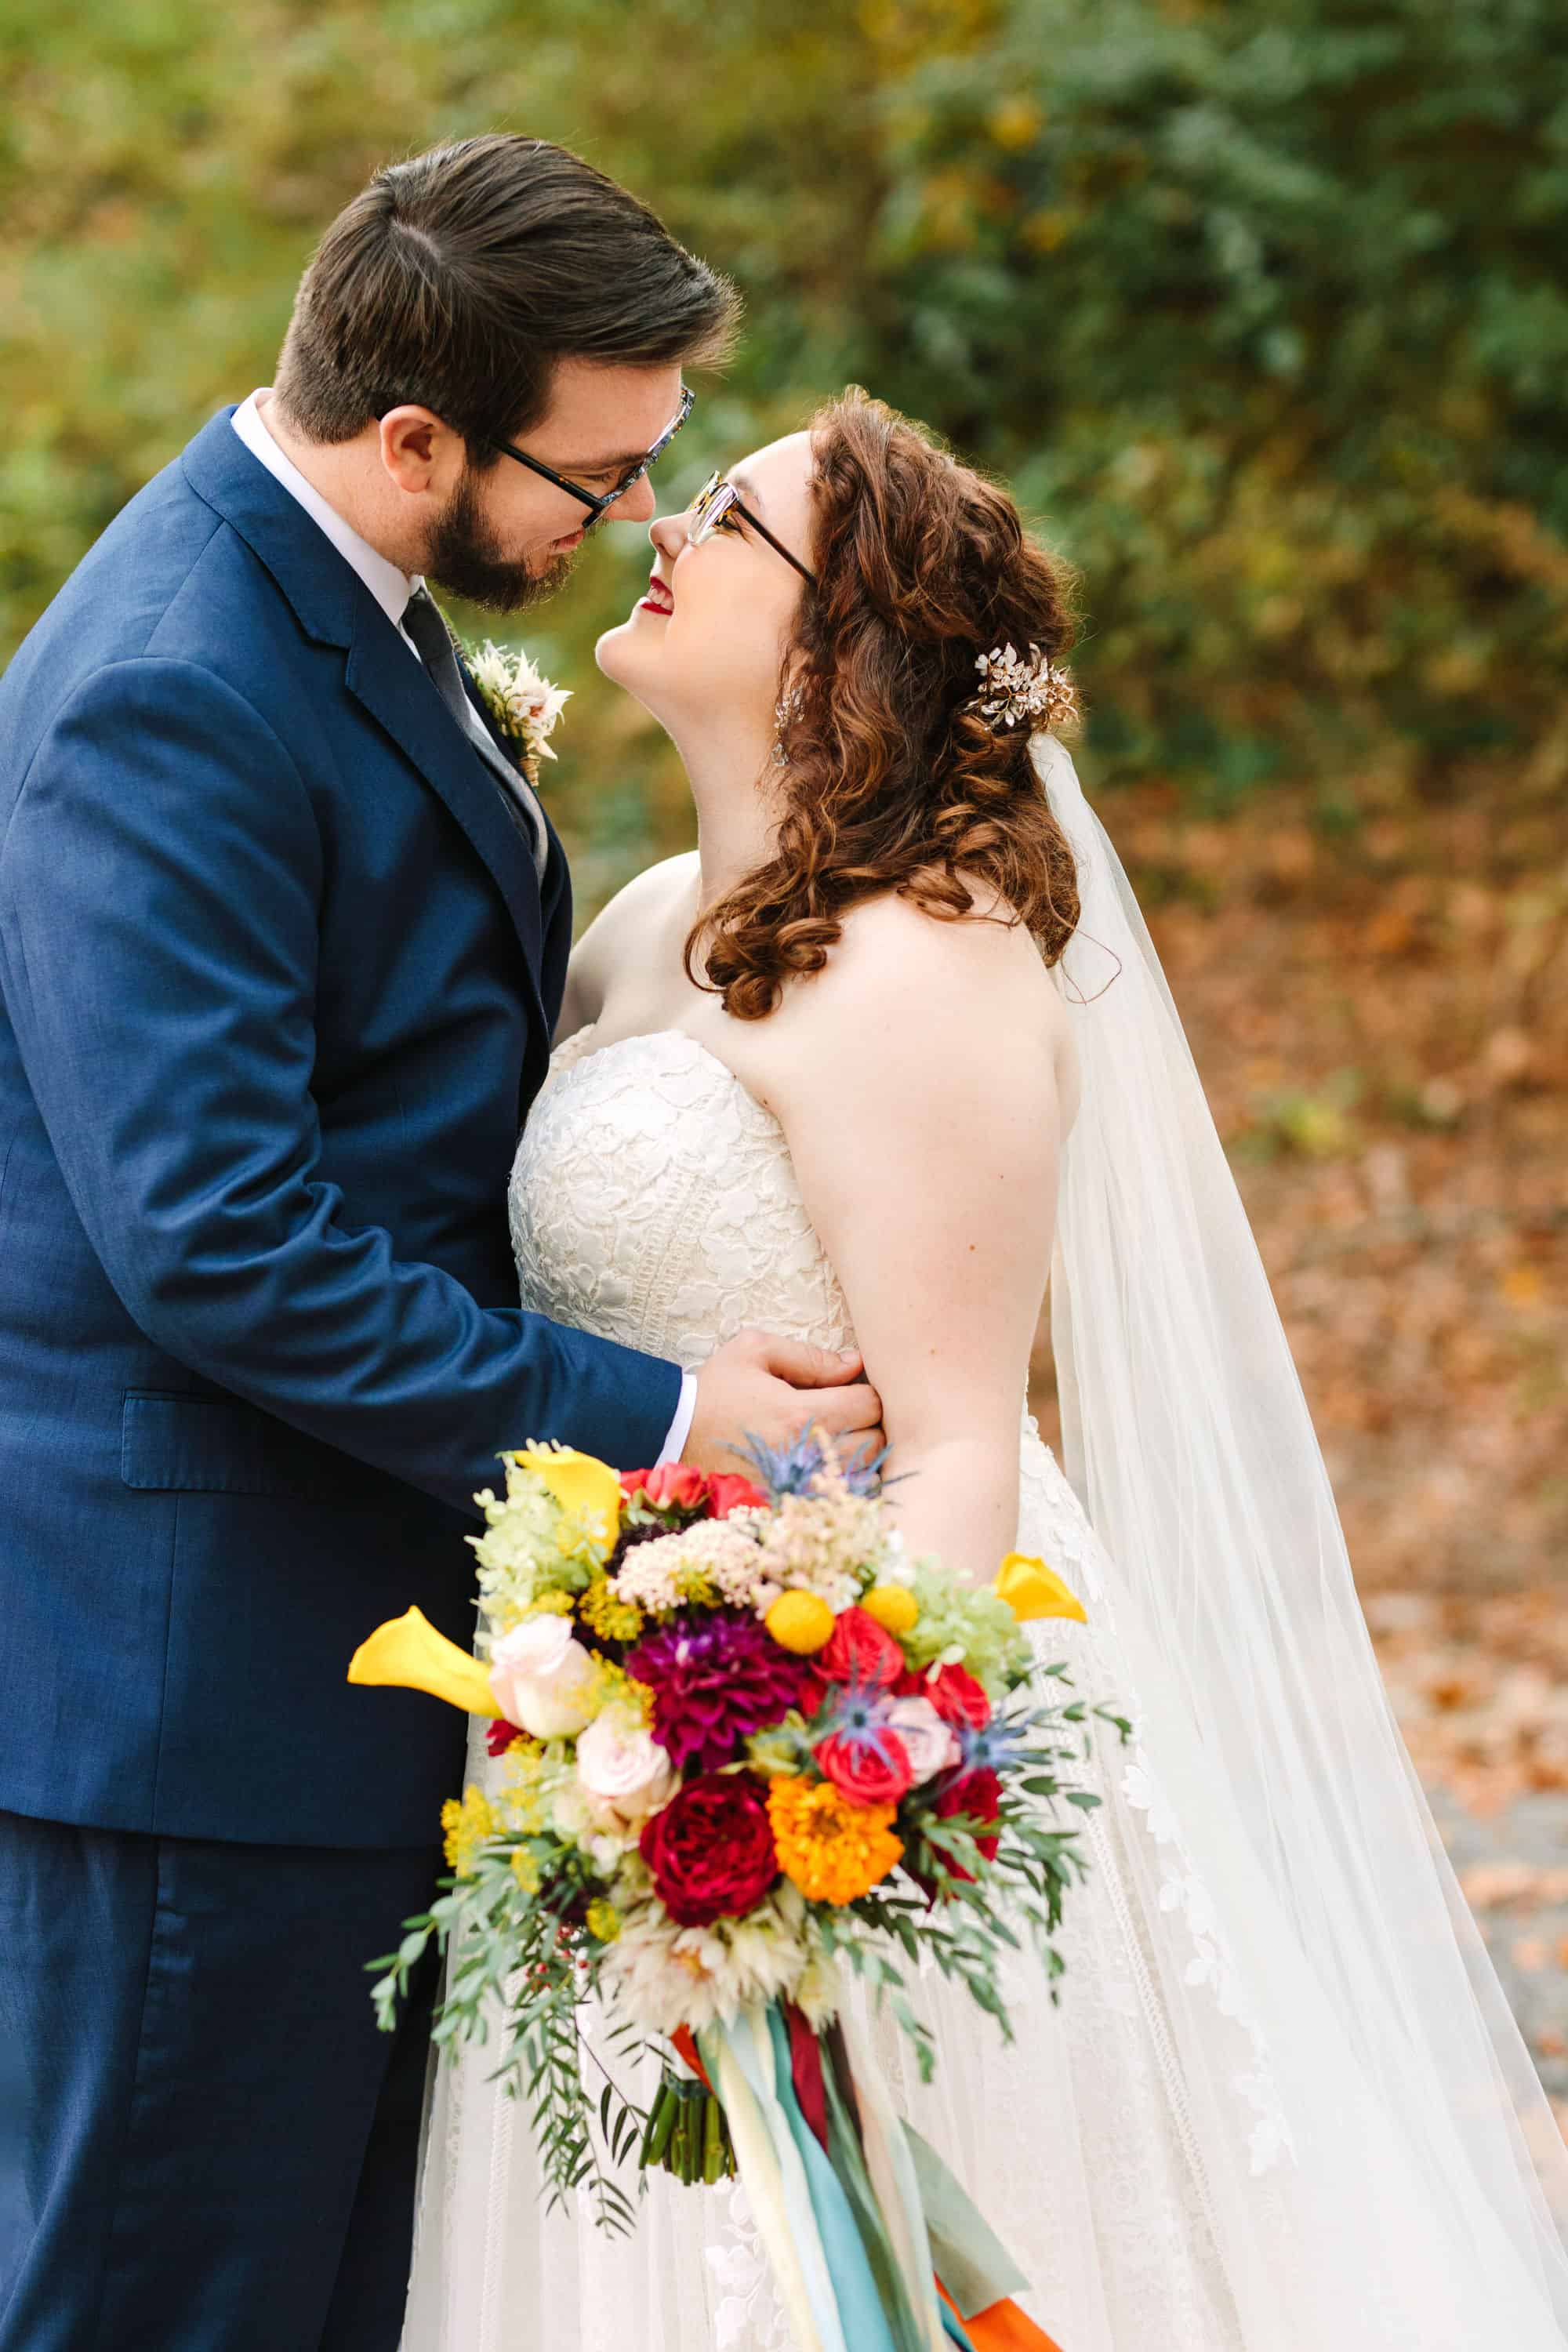 Colorful wedding bouquet photo